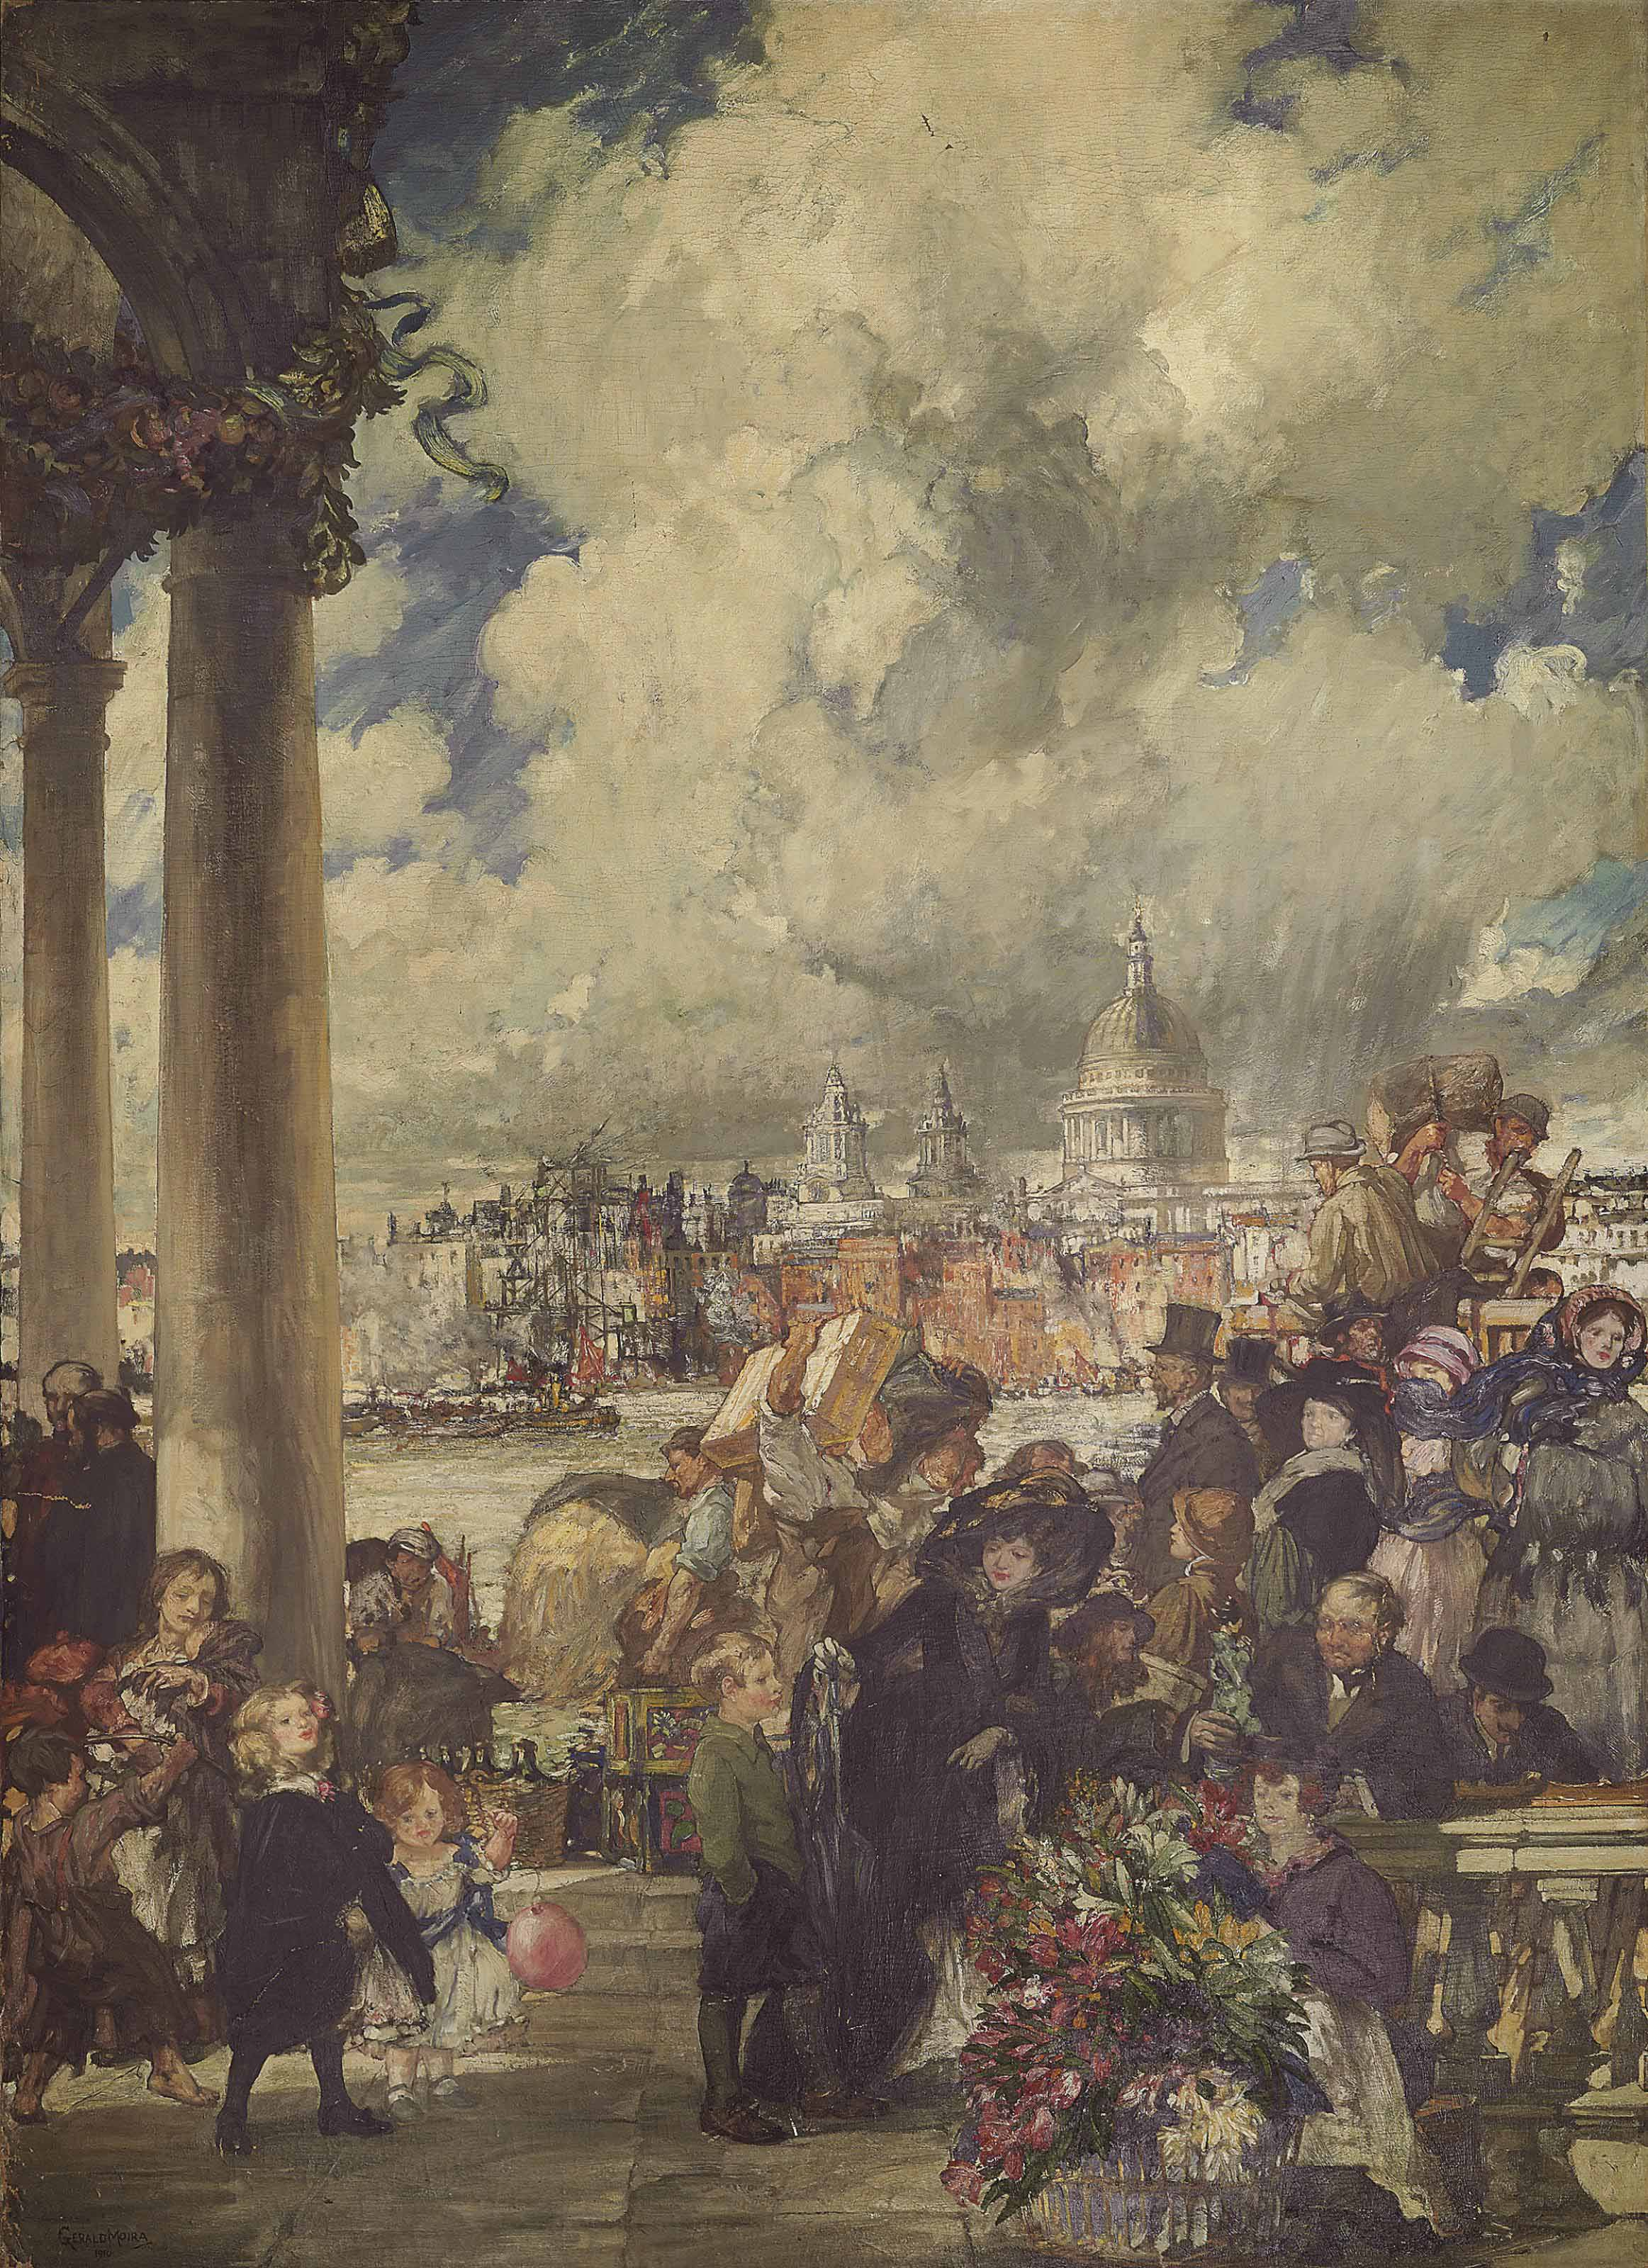 Market scene, south of the Thames